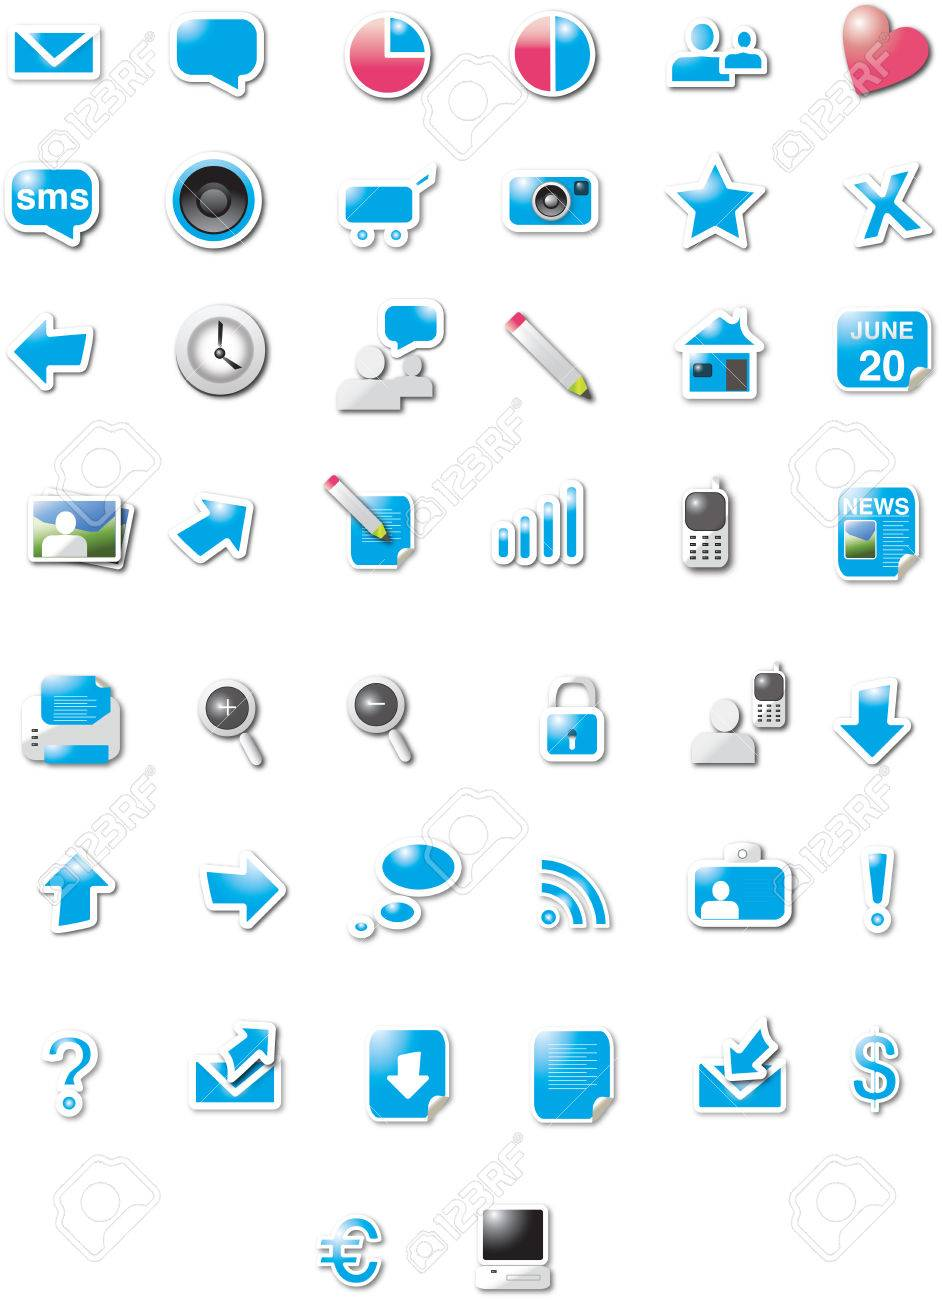 Web 20 icons royalty free cliparts vectors and stock web 20 icons stock vector 6527140 sciox Gallery